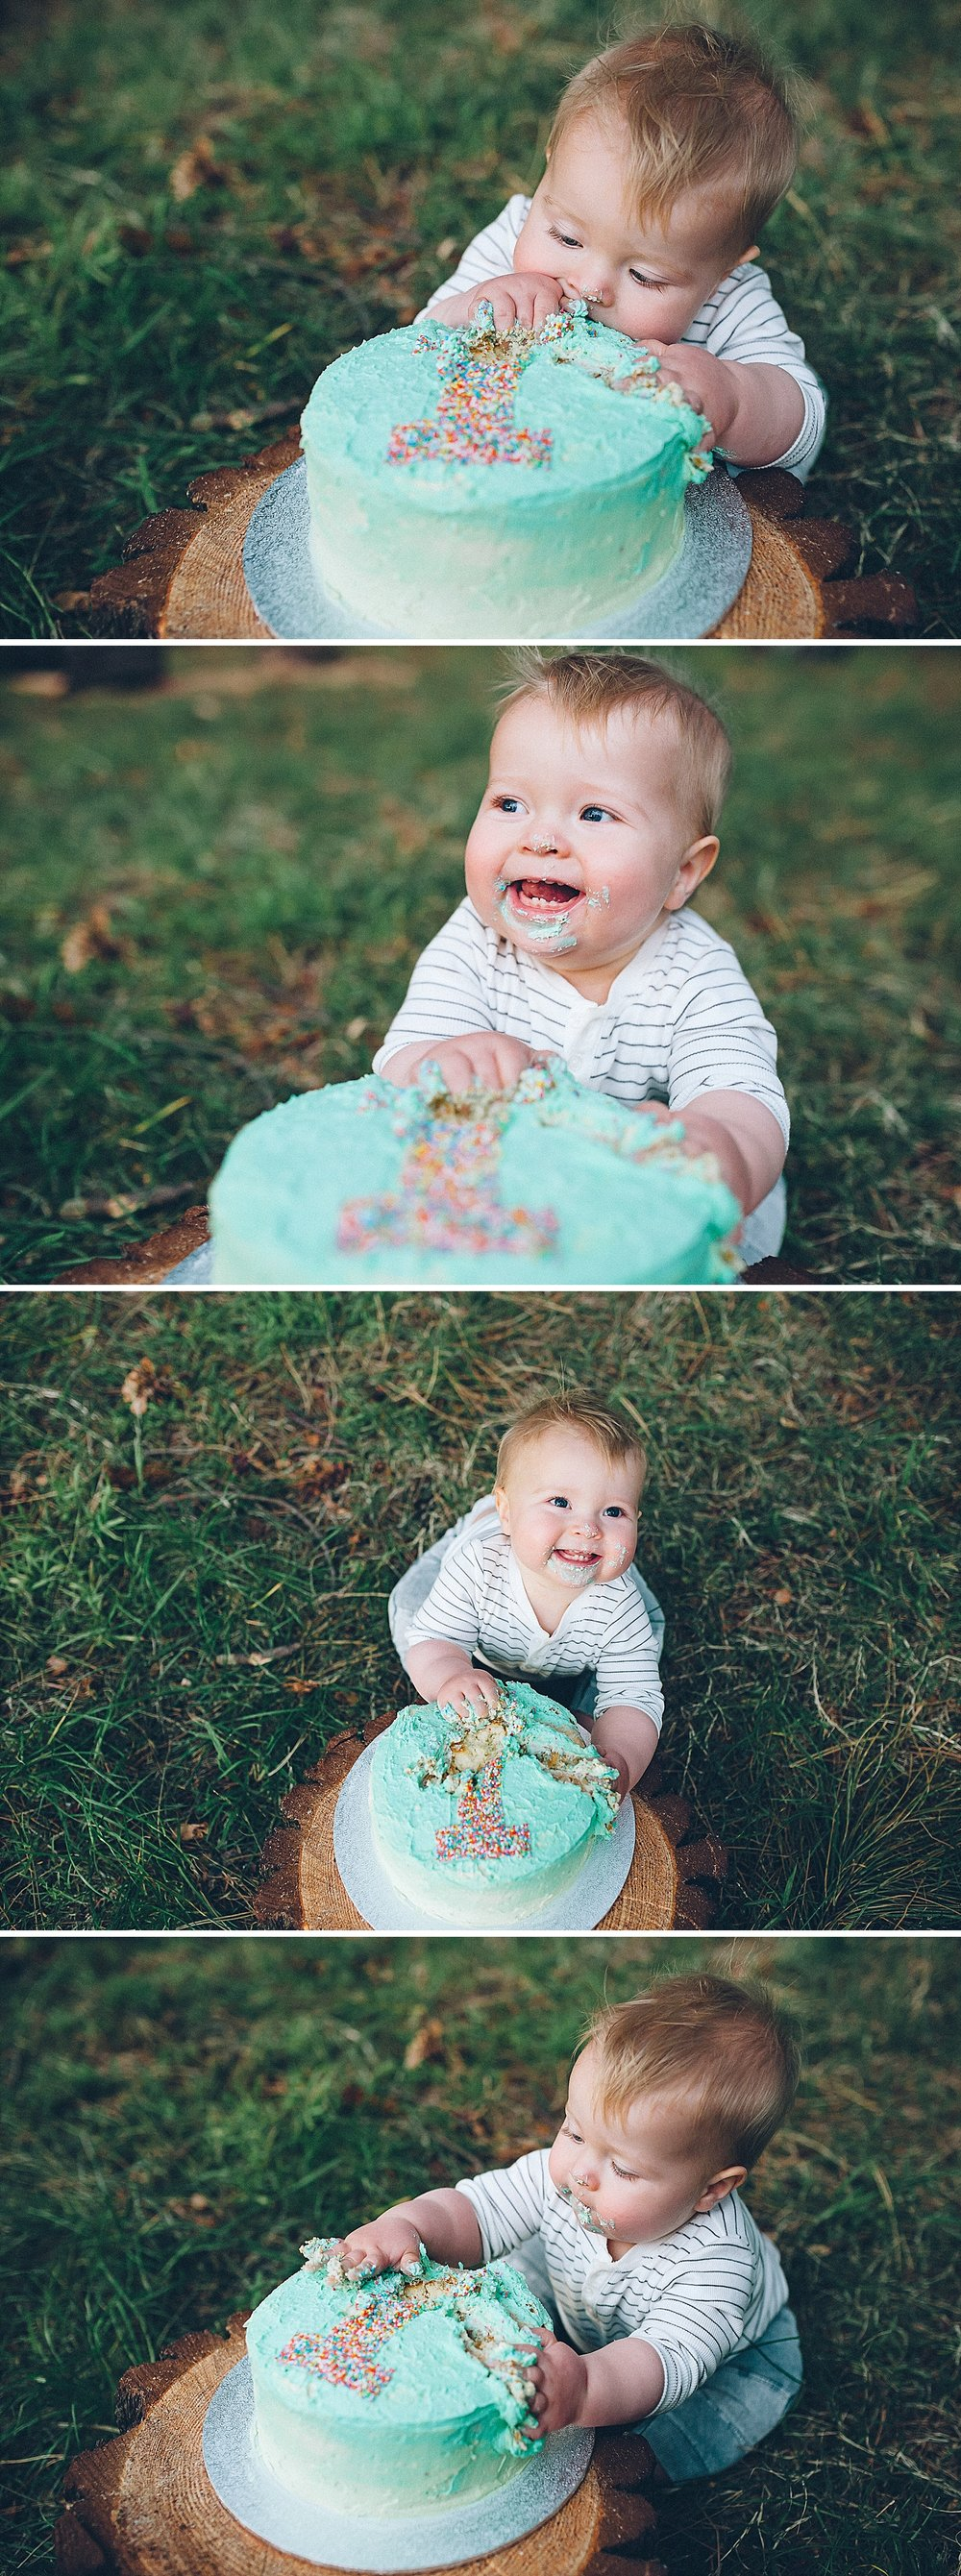 Sydney_Family_Baby_Children_Photographer_0056.jpg